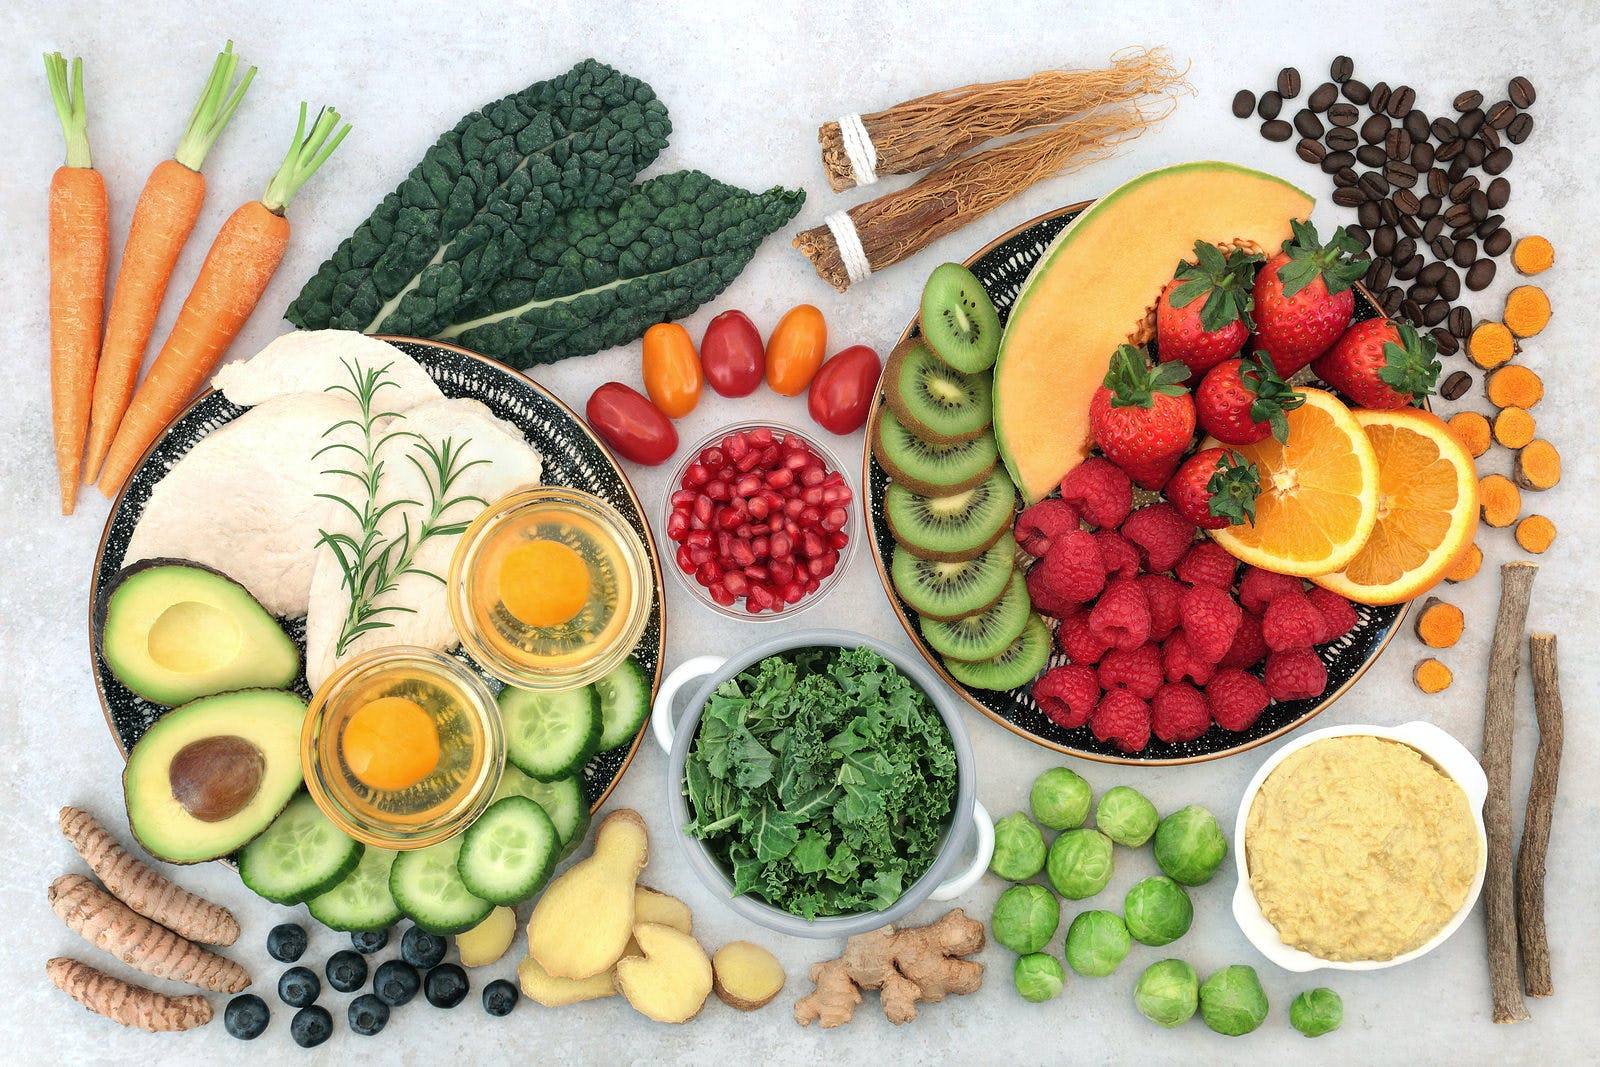 Healthy food collection for asthma sufferers, high in protein, omega 3, antioxidants, vitamins and minerals. Foods to also help wheezing, shortness of breath, COPD and respiratory diseases. Flat lay.